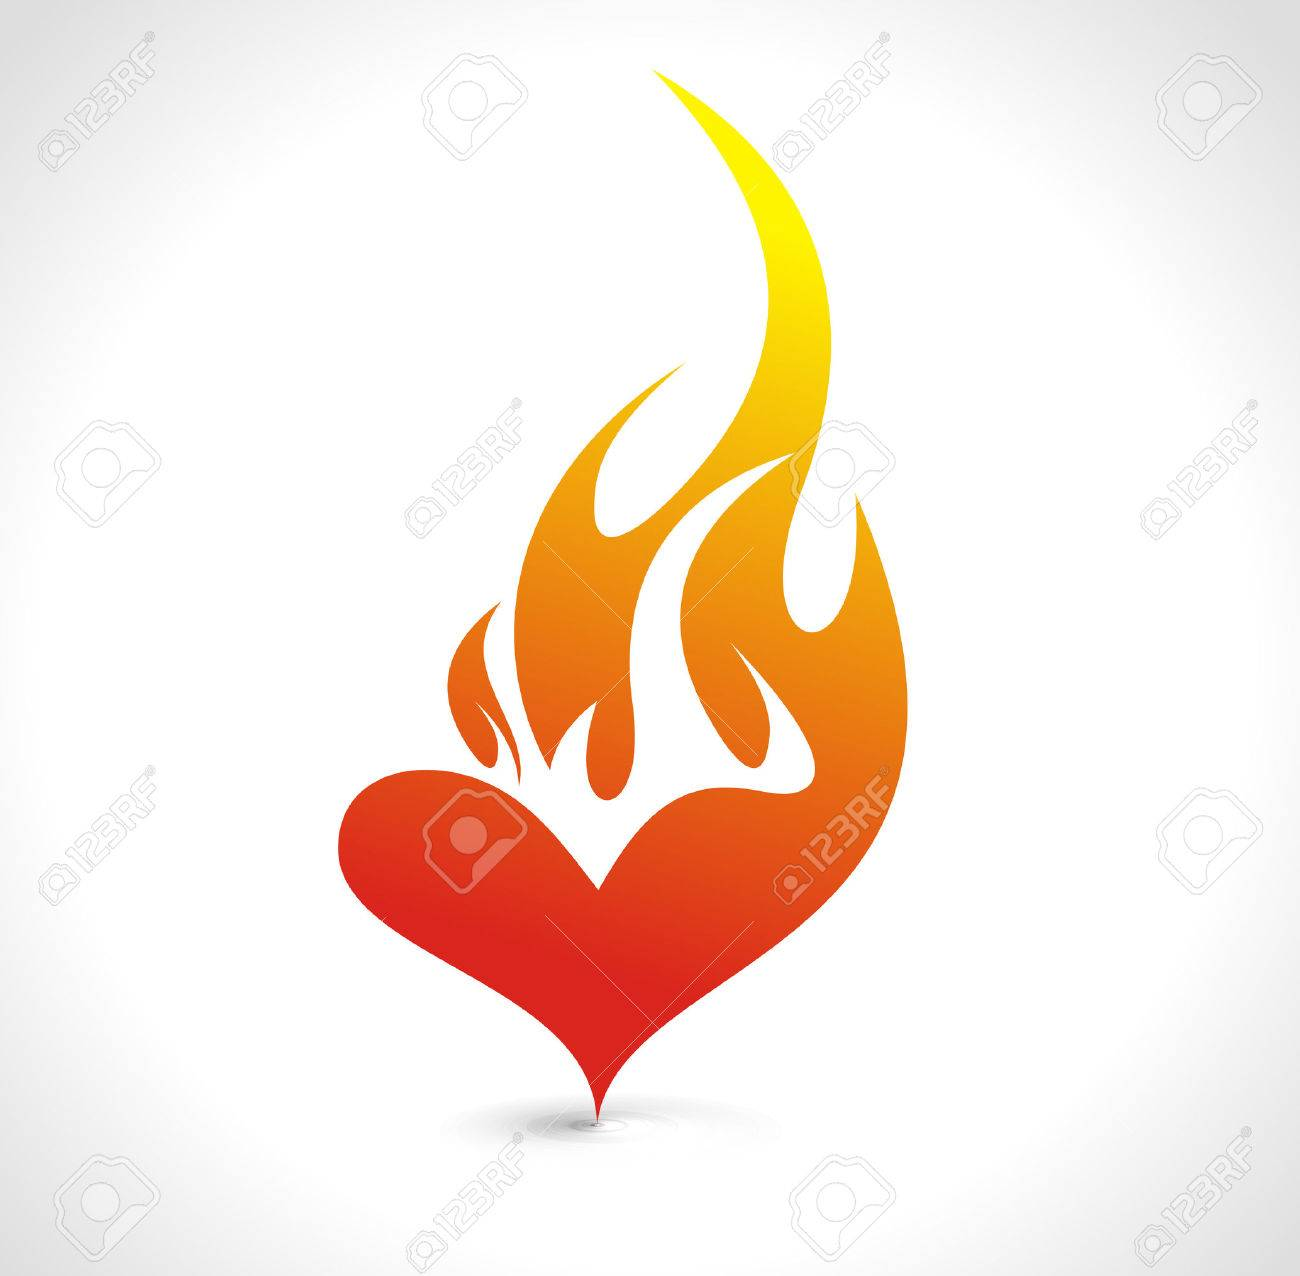 Abstract valentine's day card with fire heart background, vector illustration - 6358757